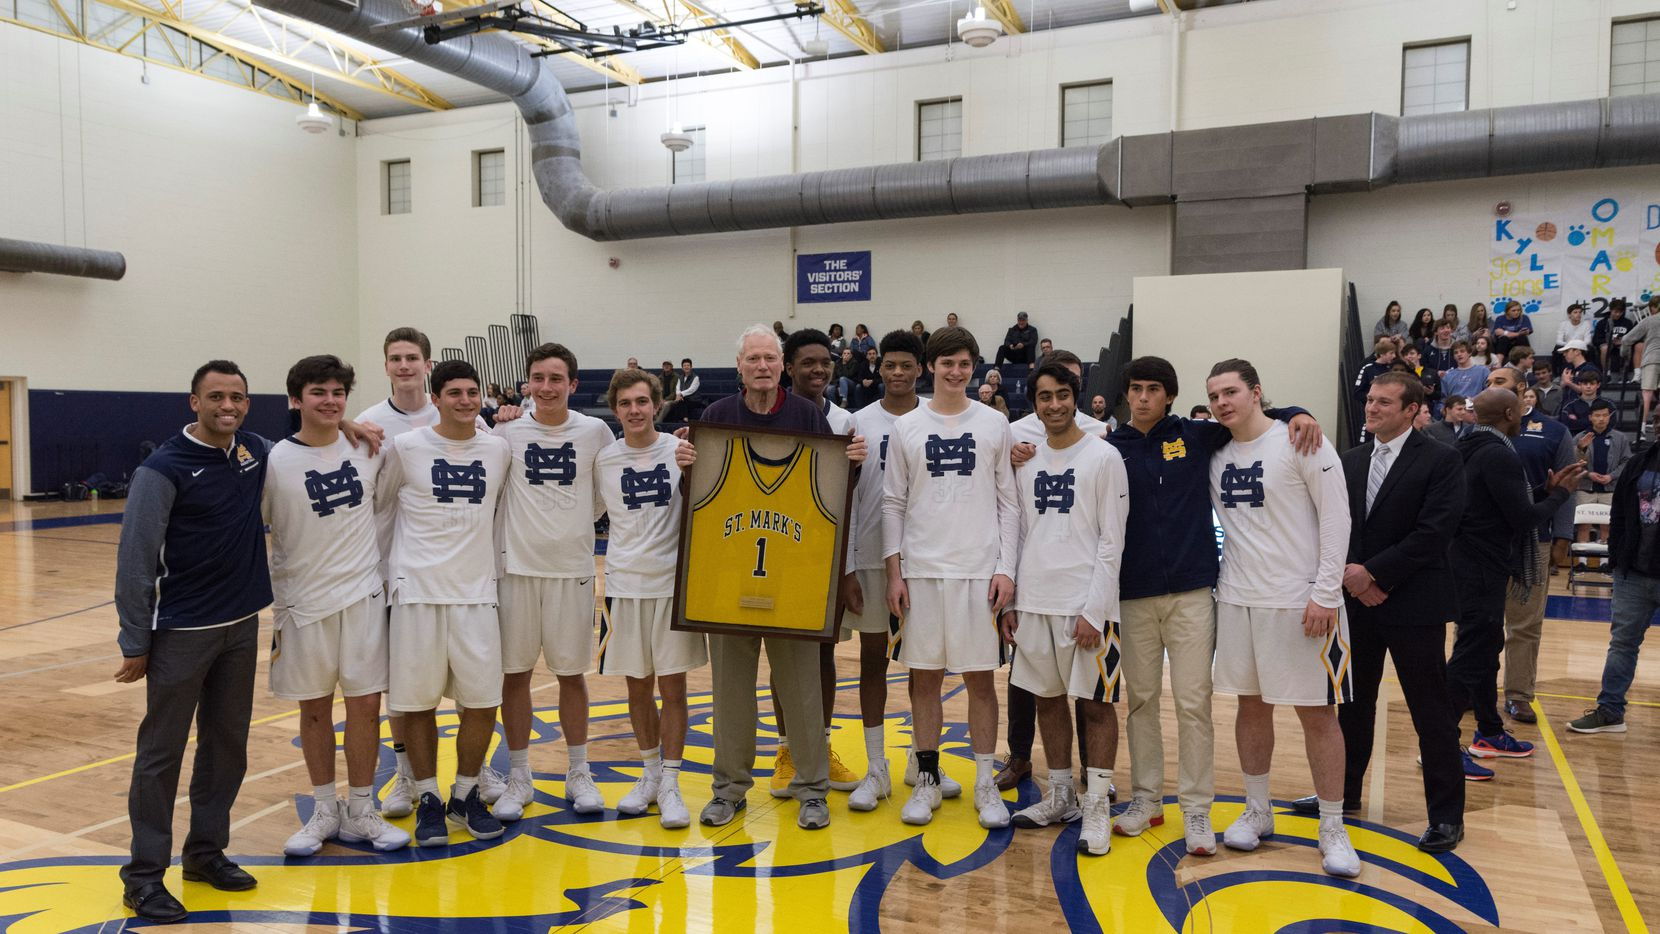 Tom Adams (center, holding jersey) was honored in 2018 during the final season that he worked as an assistant coach for the St. Mark's basketball team.